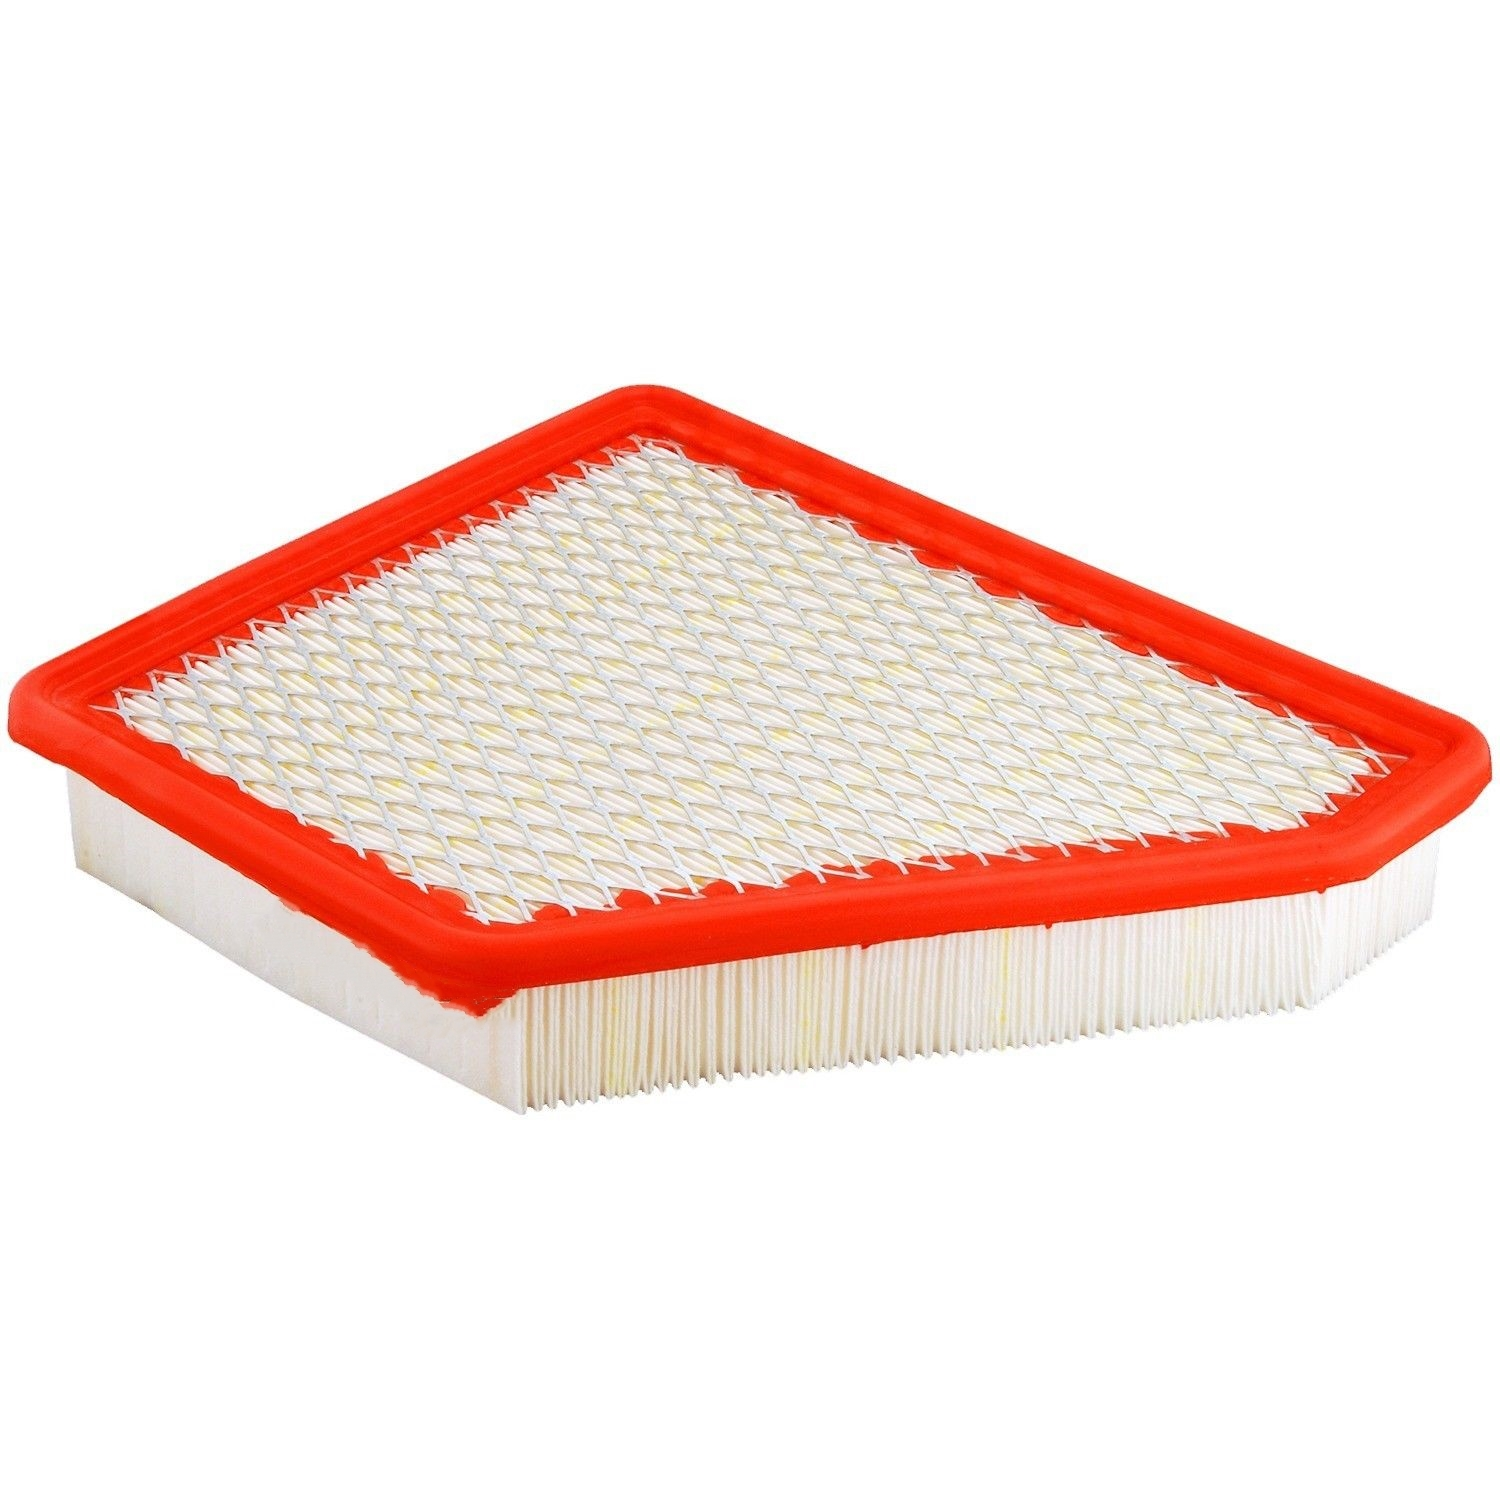 Durable modeling Orange PU white paper iron mesh auto CA10465 car air filters ratings for FRAM